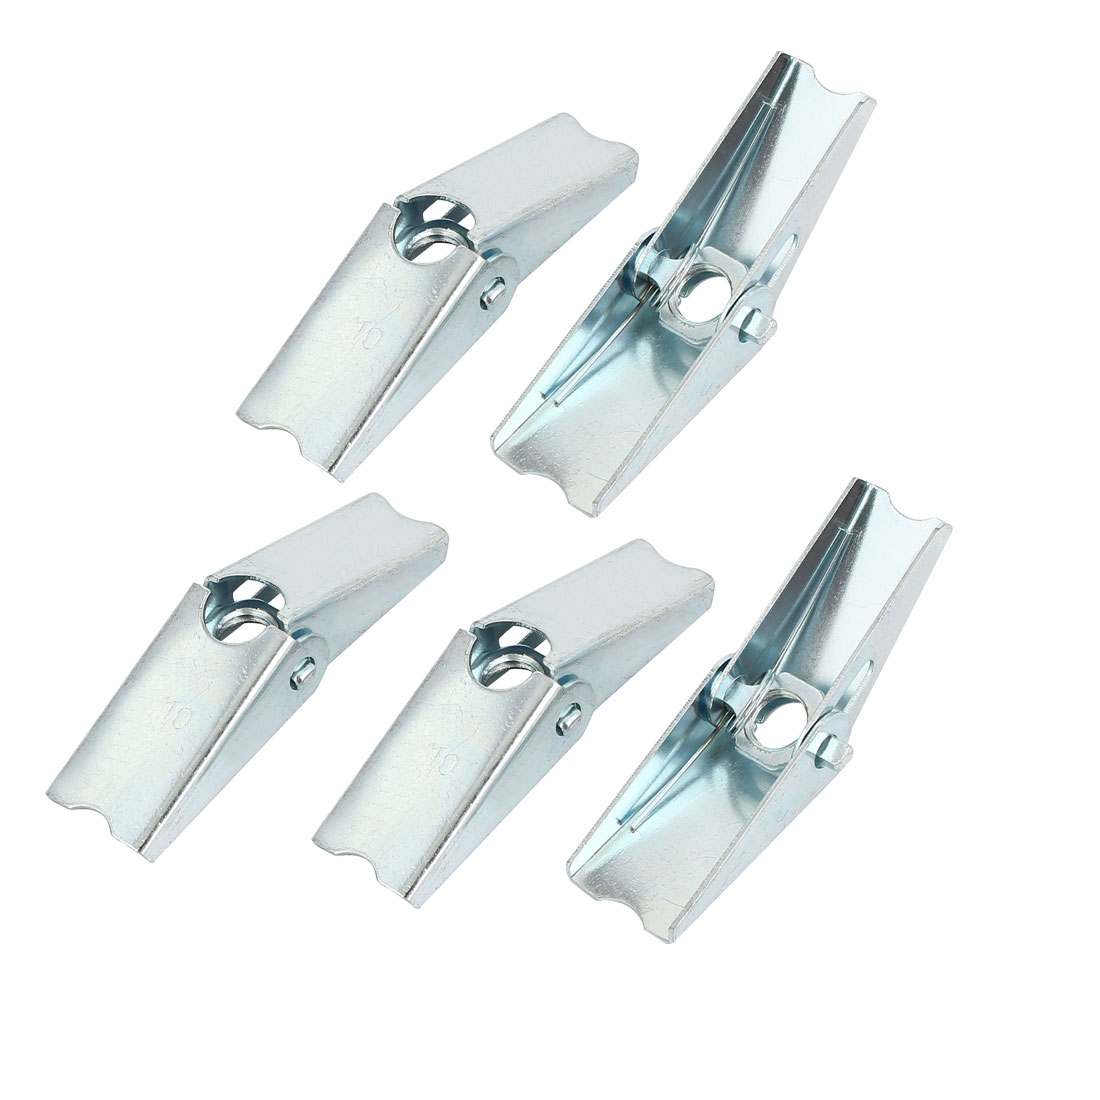 M10 Dia Female Thread Spring Loaded Hollow Wall Anchor Toggle Wing Nut 5pcs